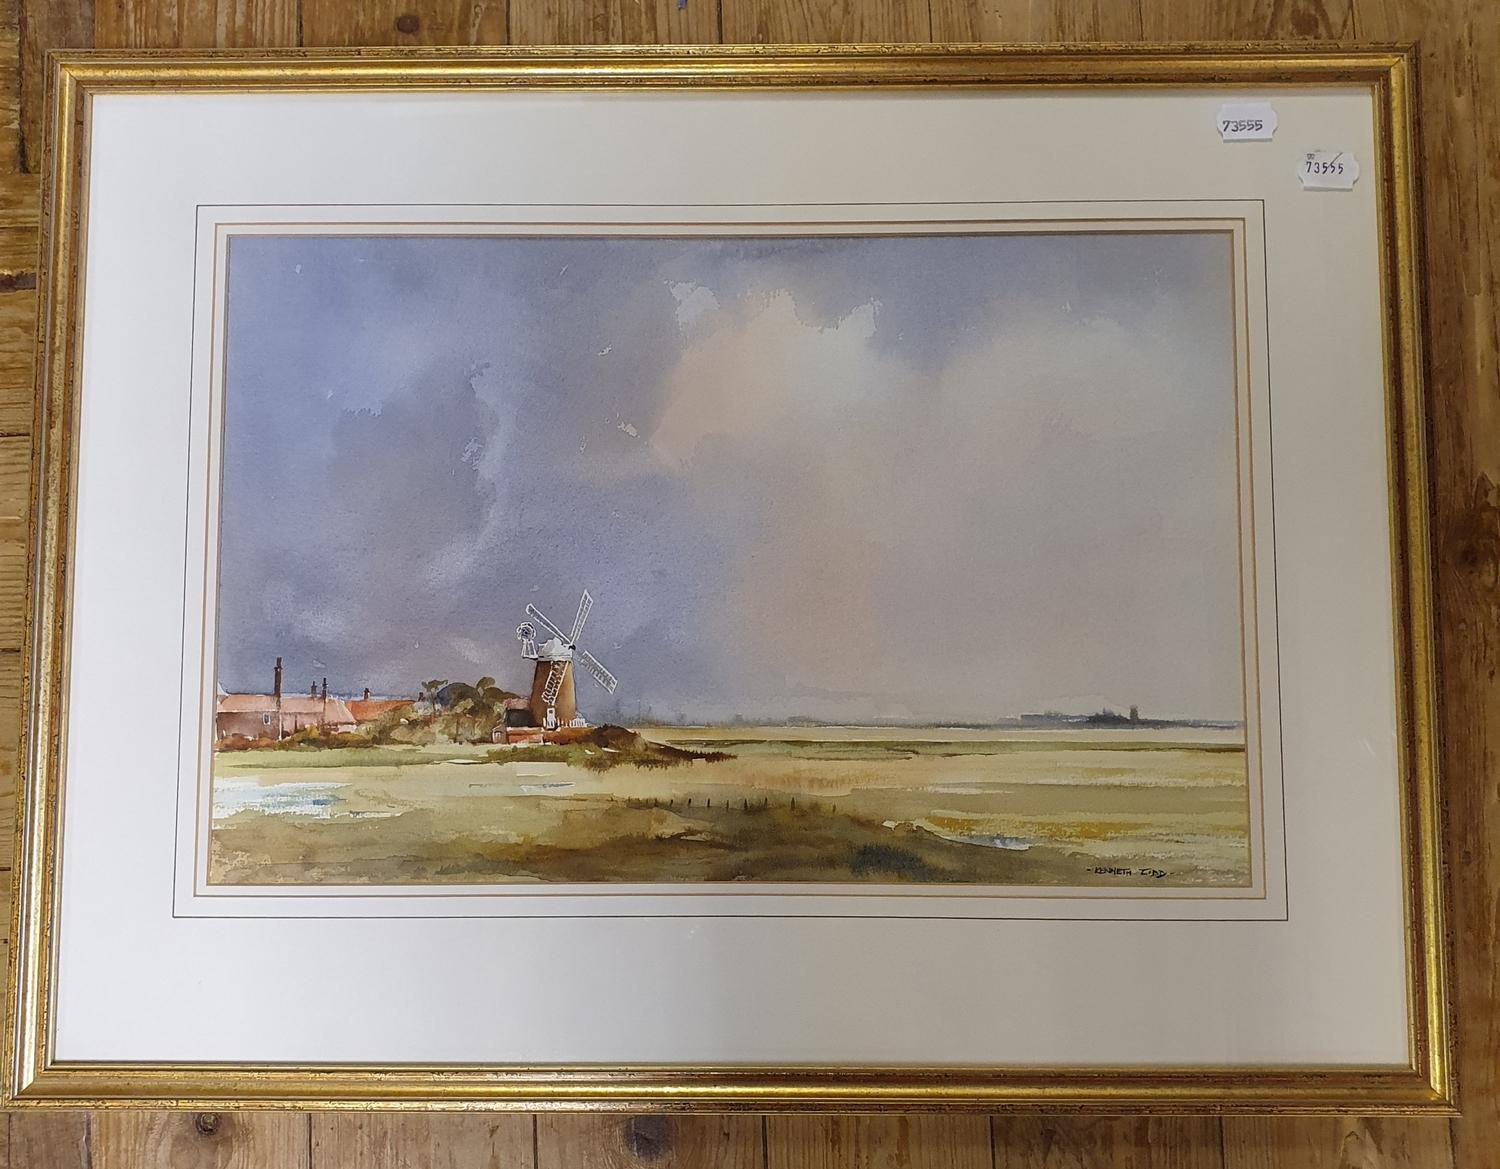 Kenneth Lidd, landscape with a windmill, watercolour, 34 x 52 cm - Image 2 of 3